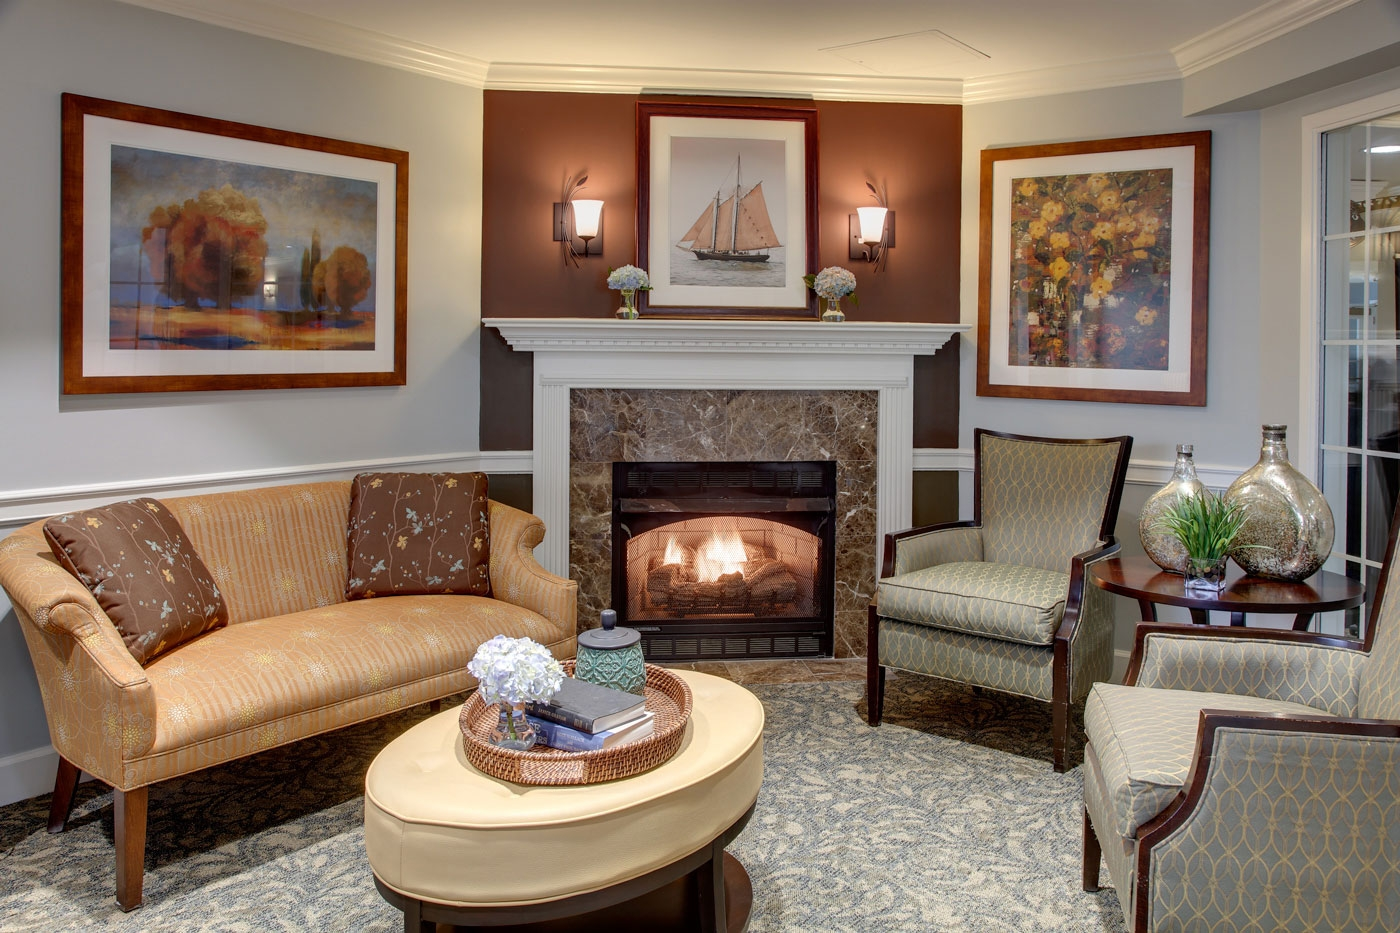 Our interior design for a cozy family visiting area in an assisted living/memory care community